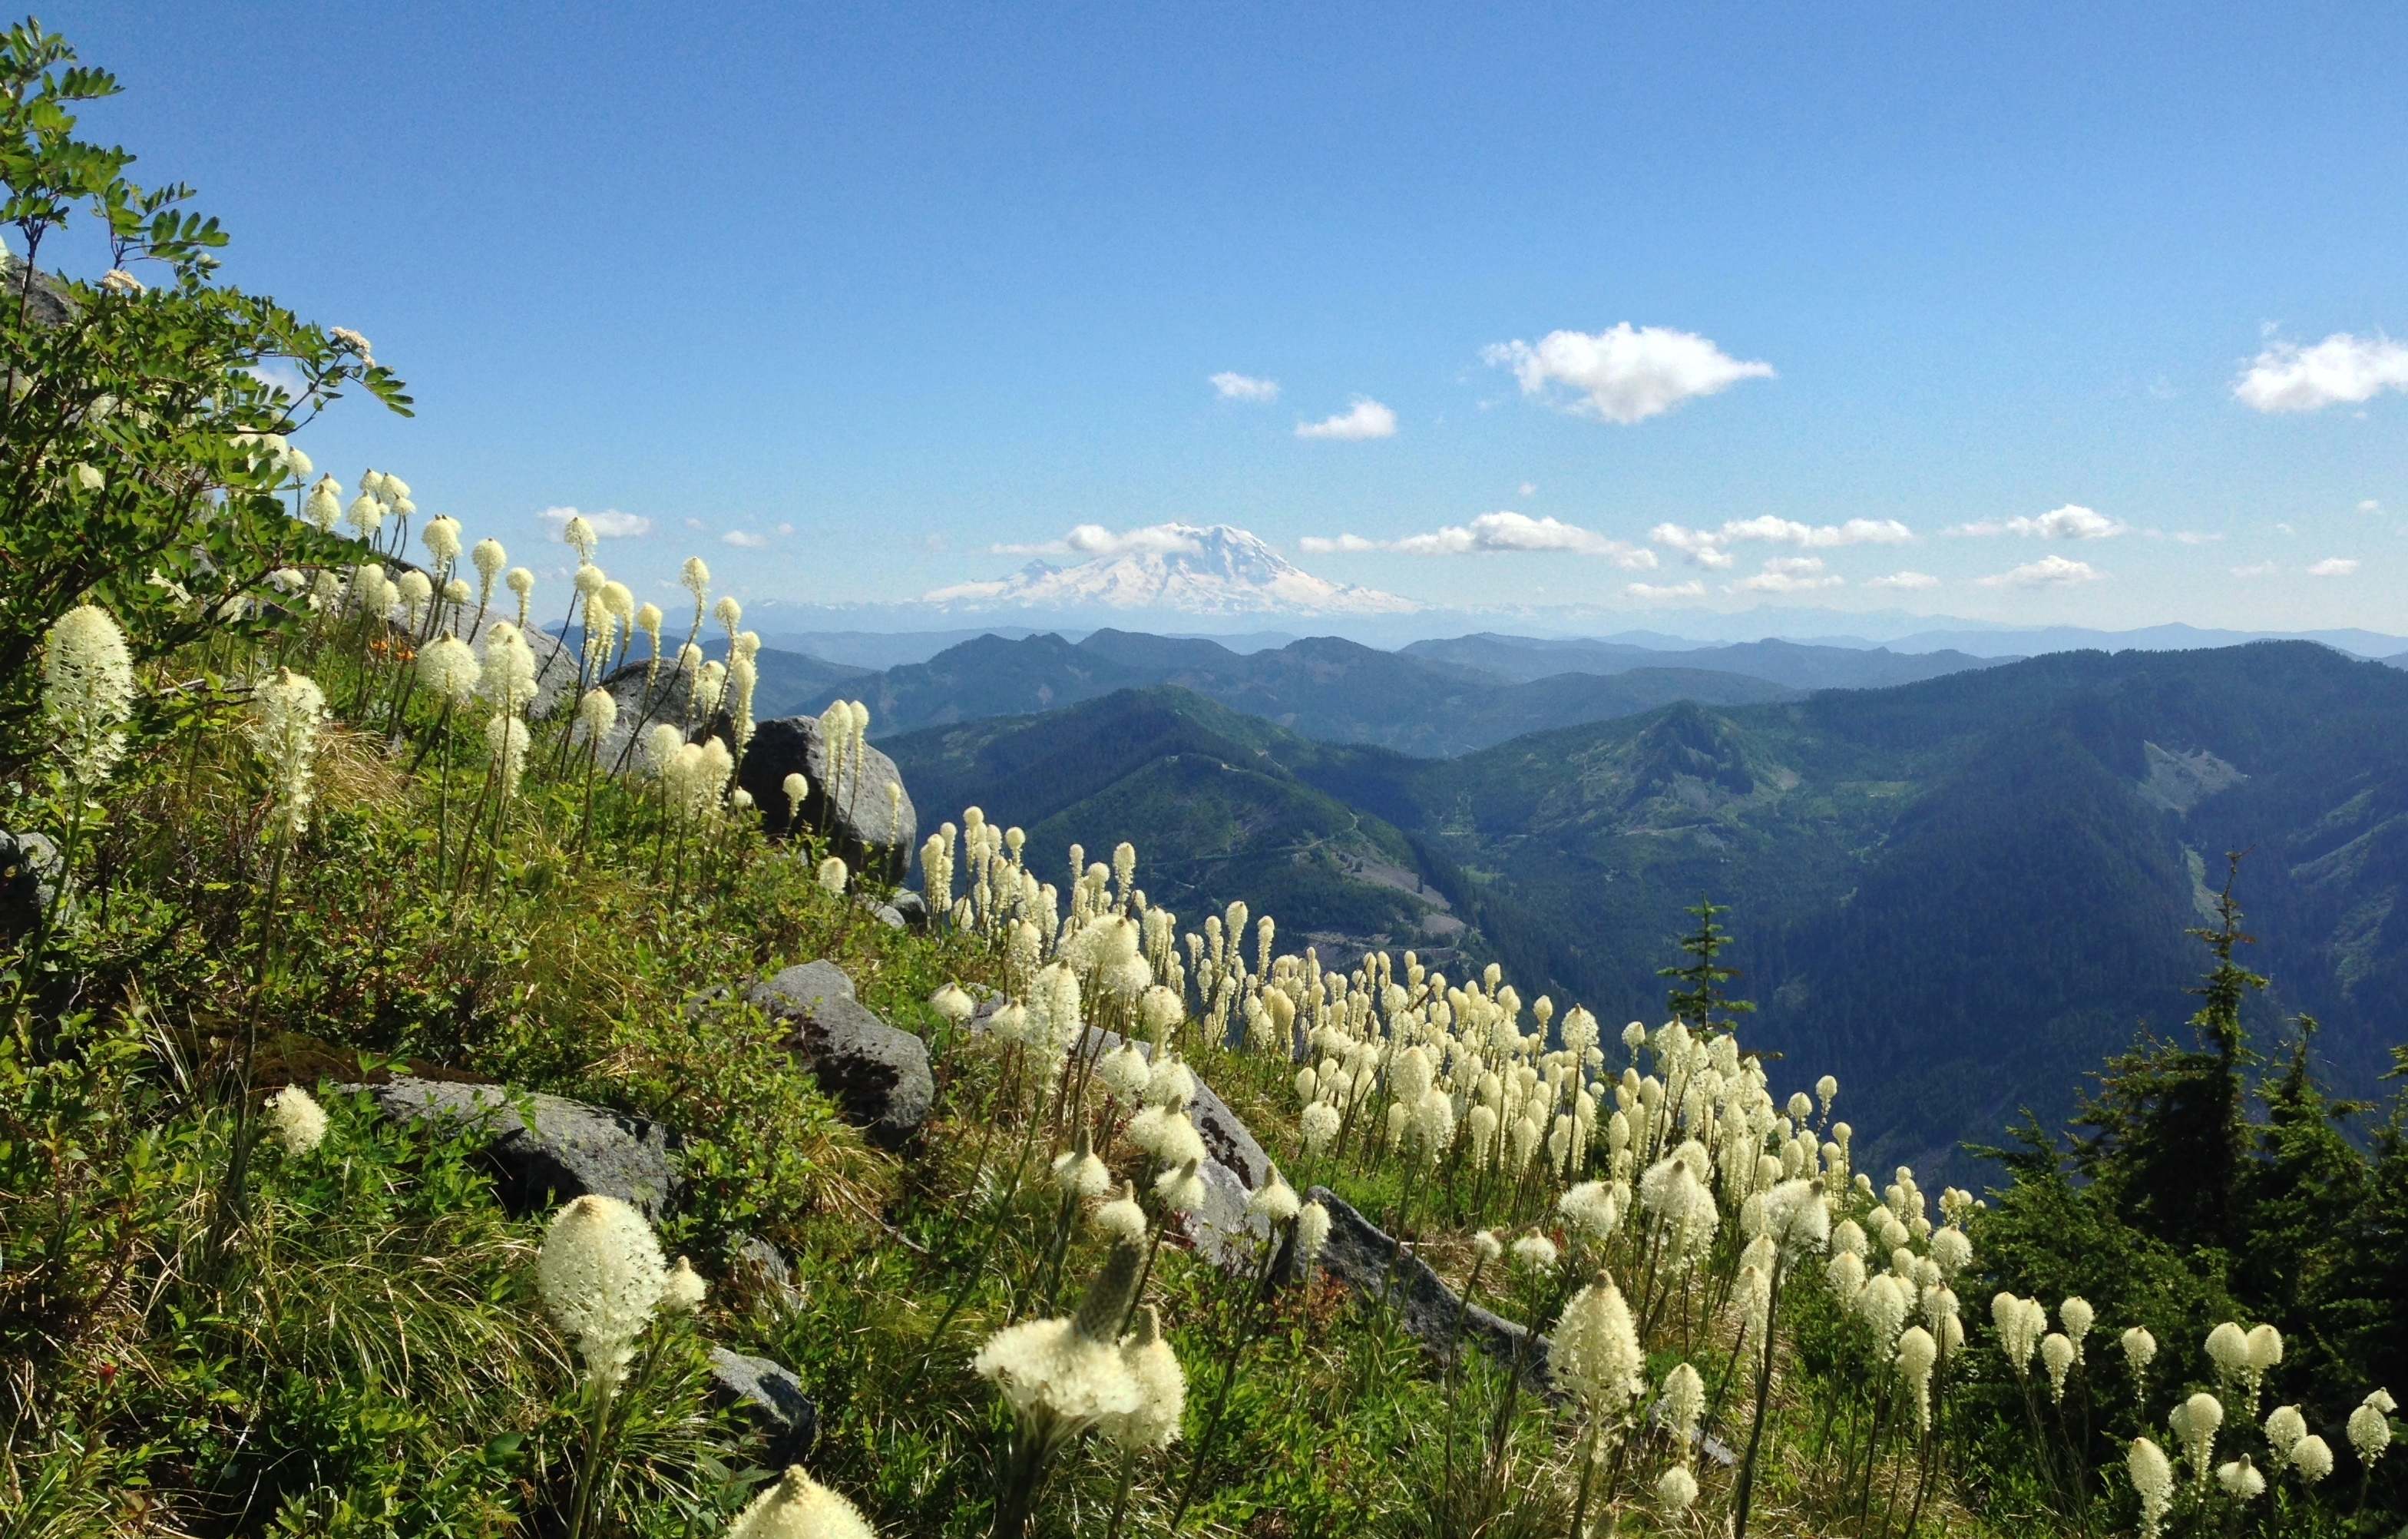 Bandera Mountain's summer blanket of beargrass (Xerophyllum tenax) blooms mimics the snowy slopes of the distant Mt. Rainier. Bandera Mountain Trail, July 09, 2014.